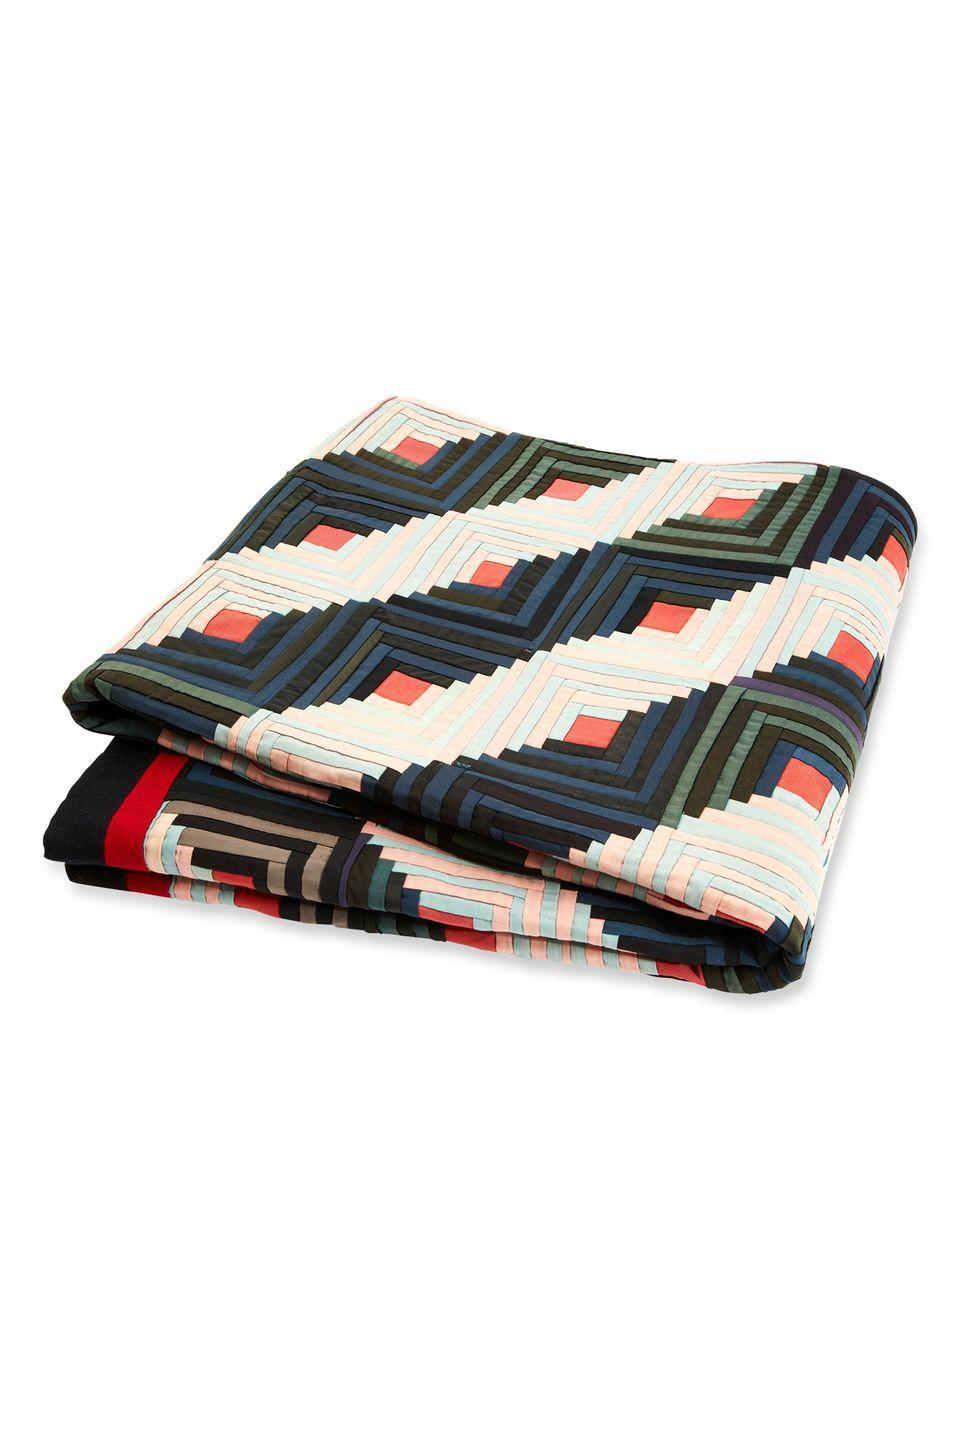 <p><strong>What it was worth (2011):</strong> $2,500</p><p><strong>What it's worth now: </strong>$1,000</p><p>Although this blanket decreased in value by more than 50 percent, we think every handmade quilt is priceless.</p>